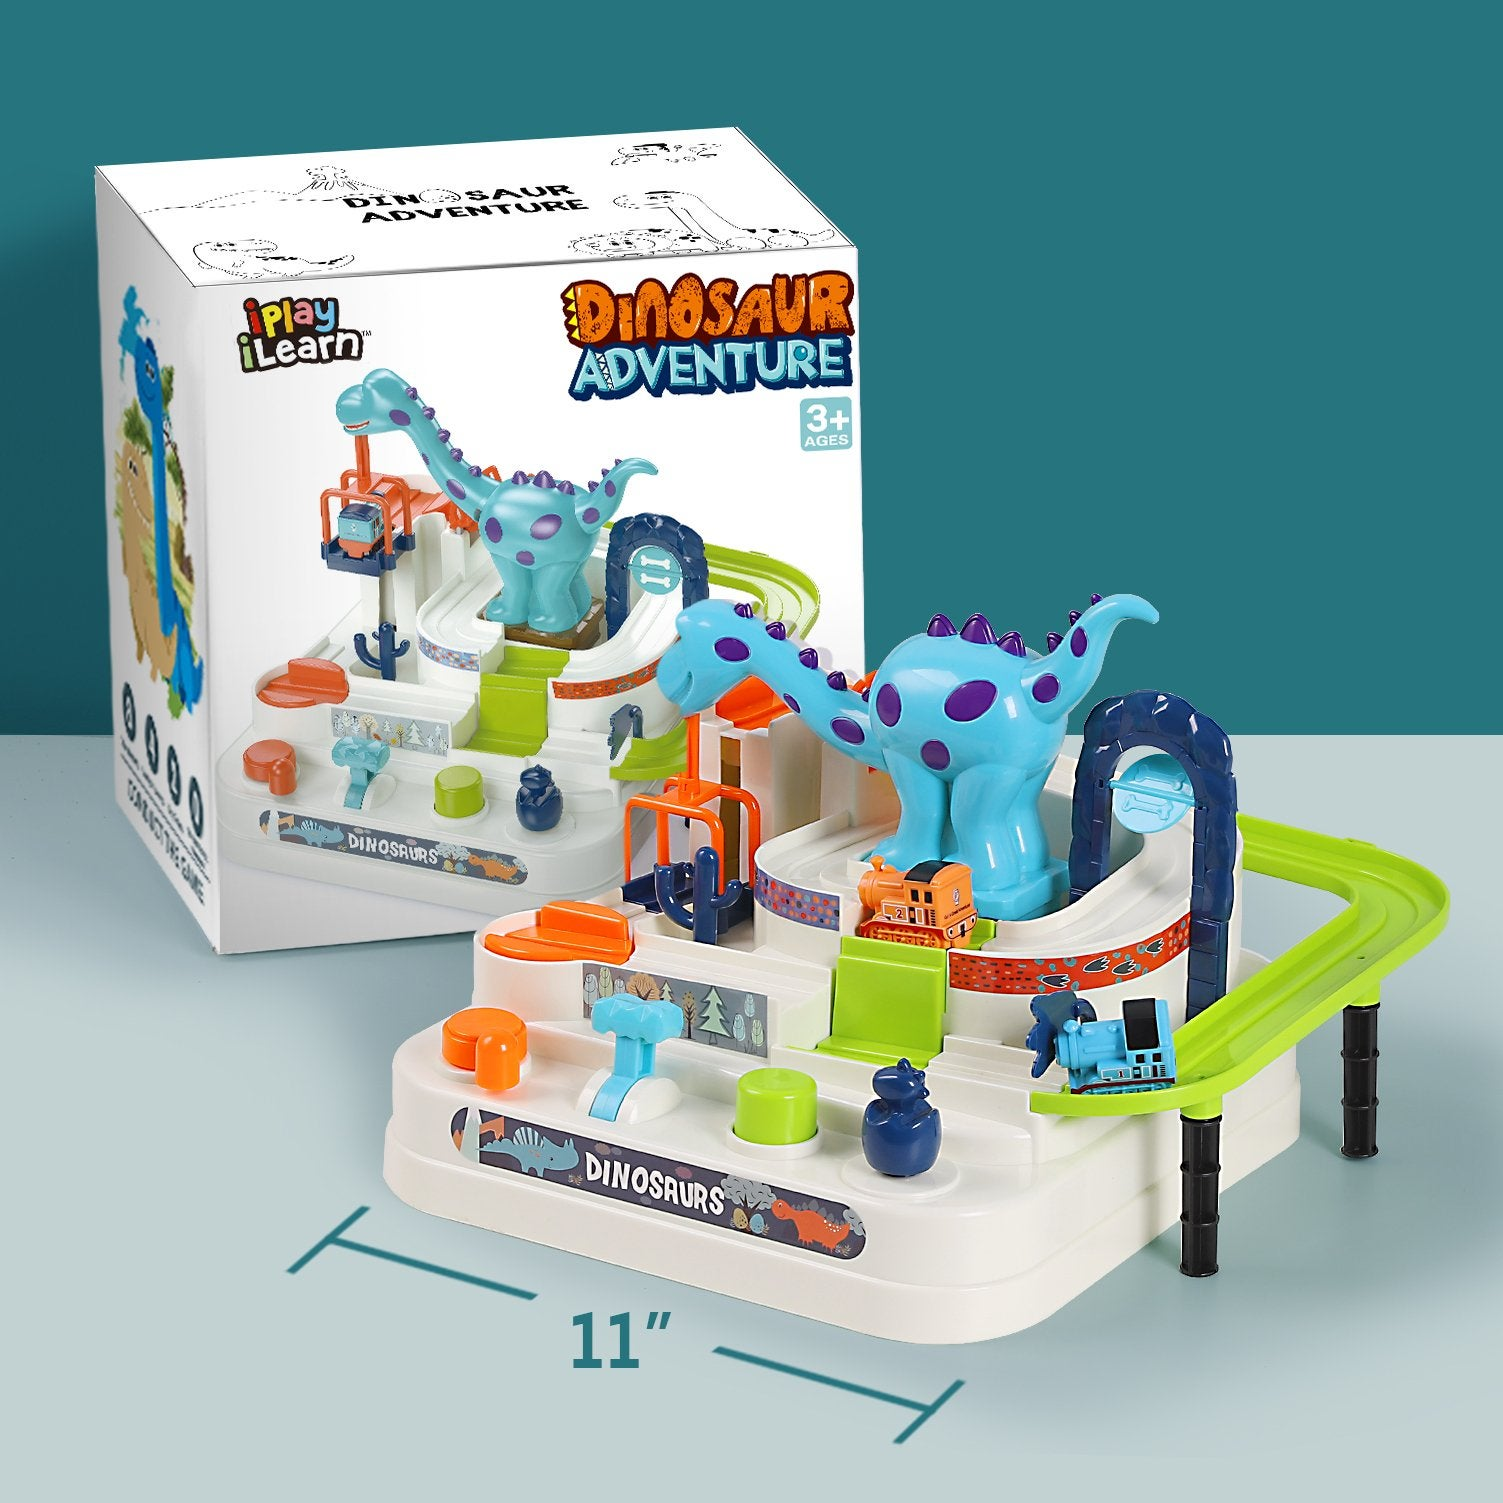 Dinosaur play set and packaging with 11-inch distance for scale